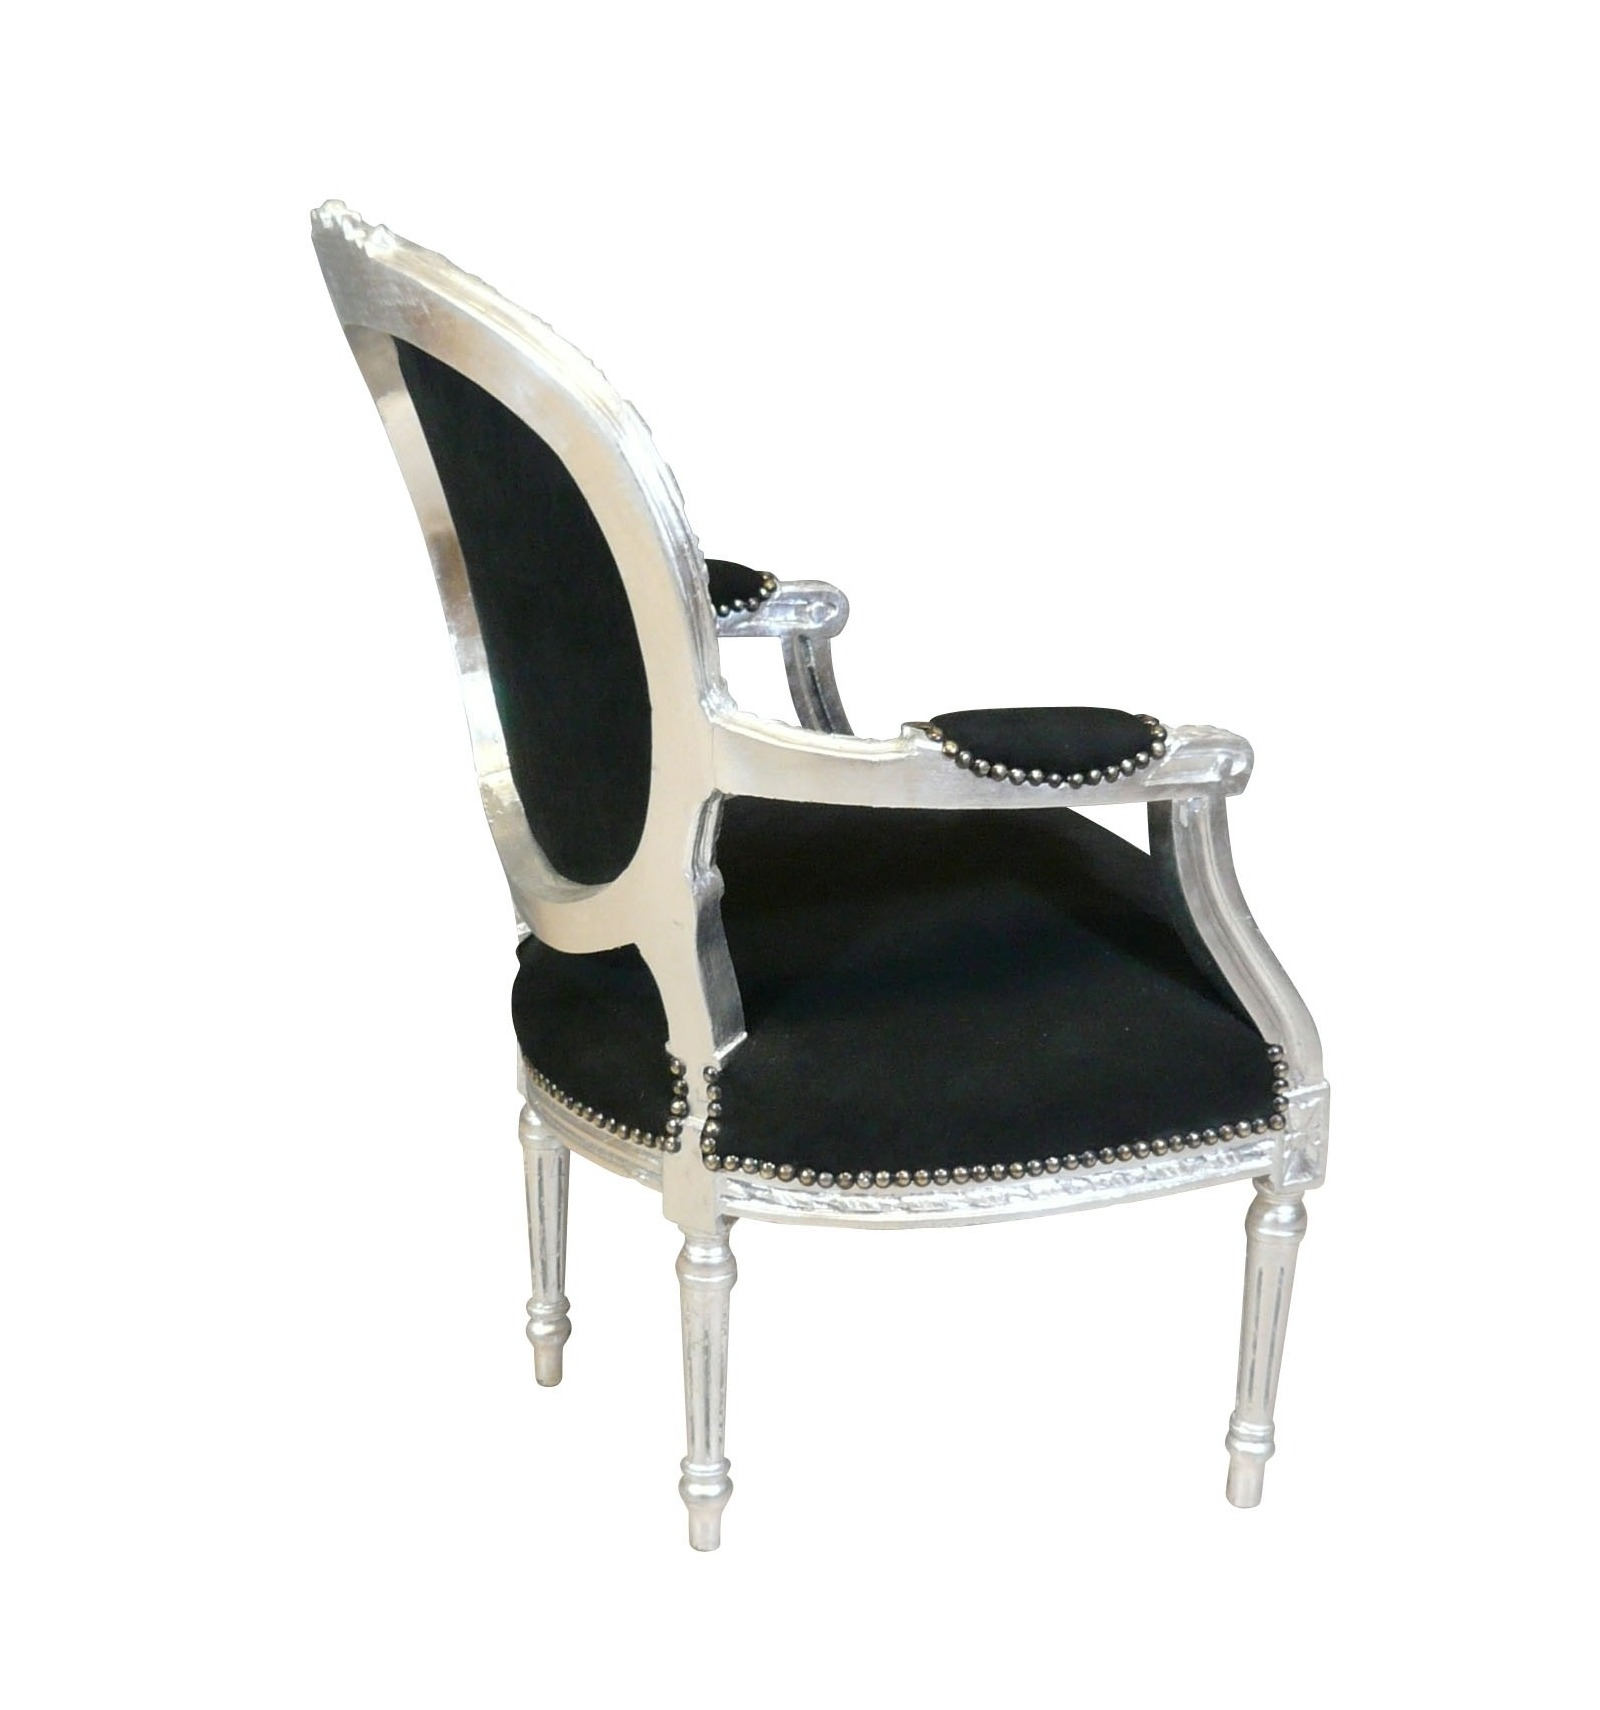 fauteuil louis xvi baroque noir et argent mobilier baroque. Black Bedroom Furniture Sets. Home Design Ideas